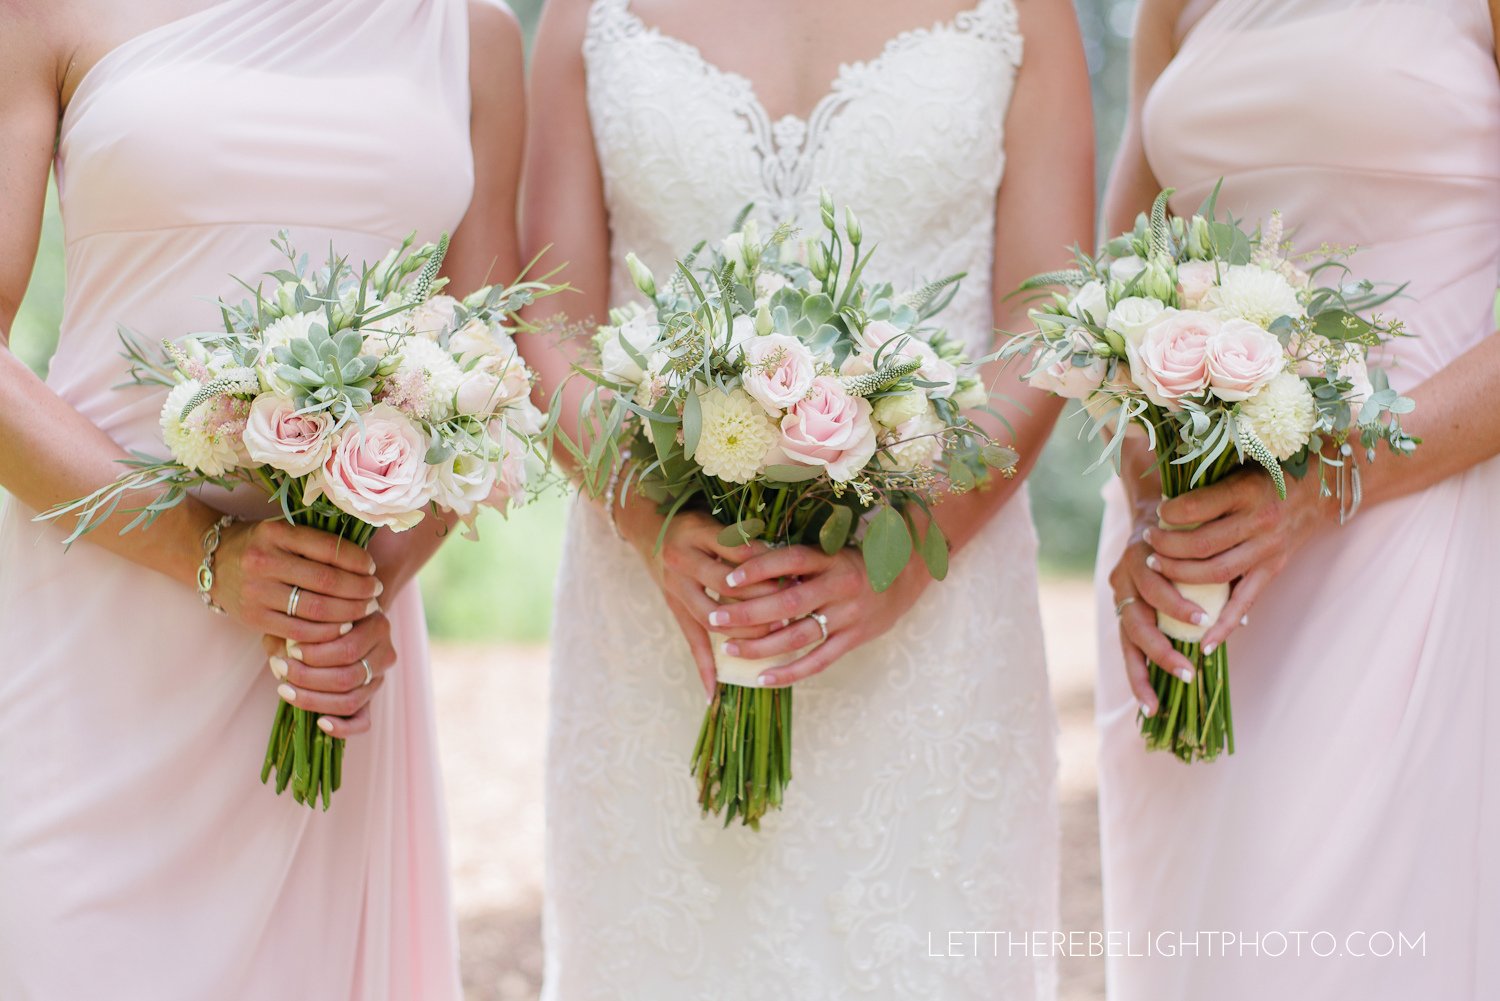 Pinebrook Golf Club Wedding Photographer, Let There Be Light Photography